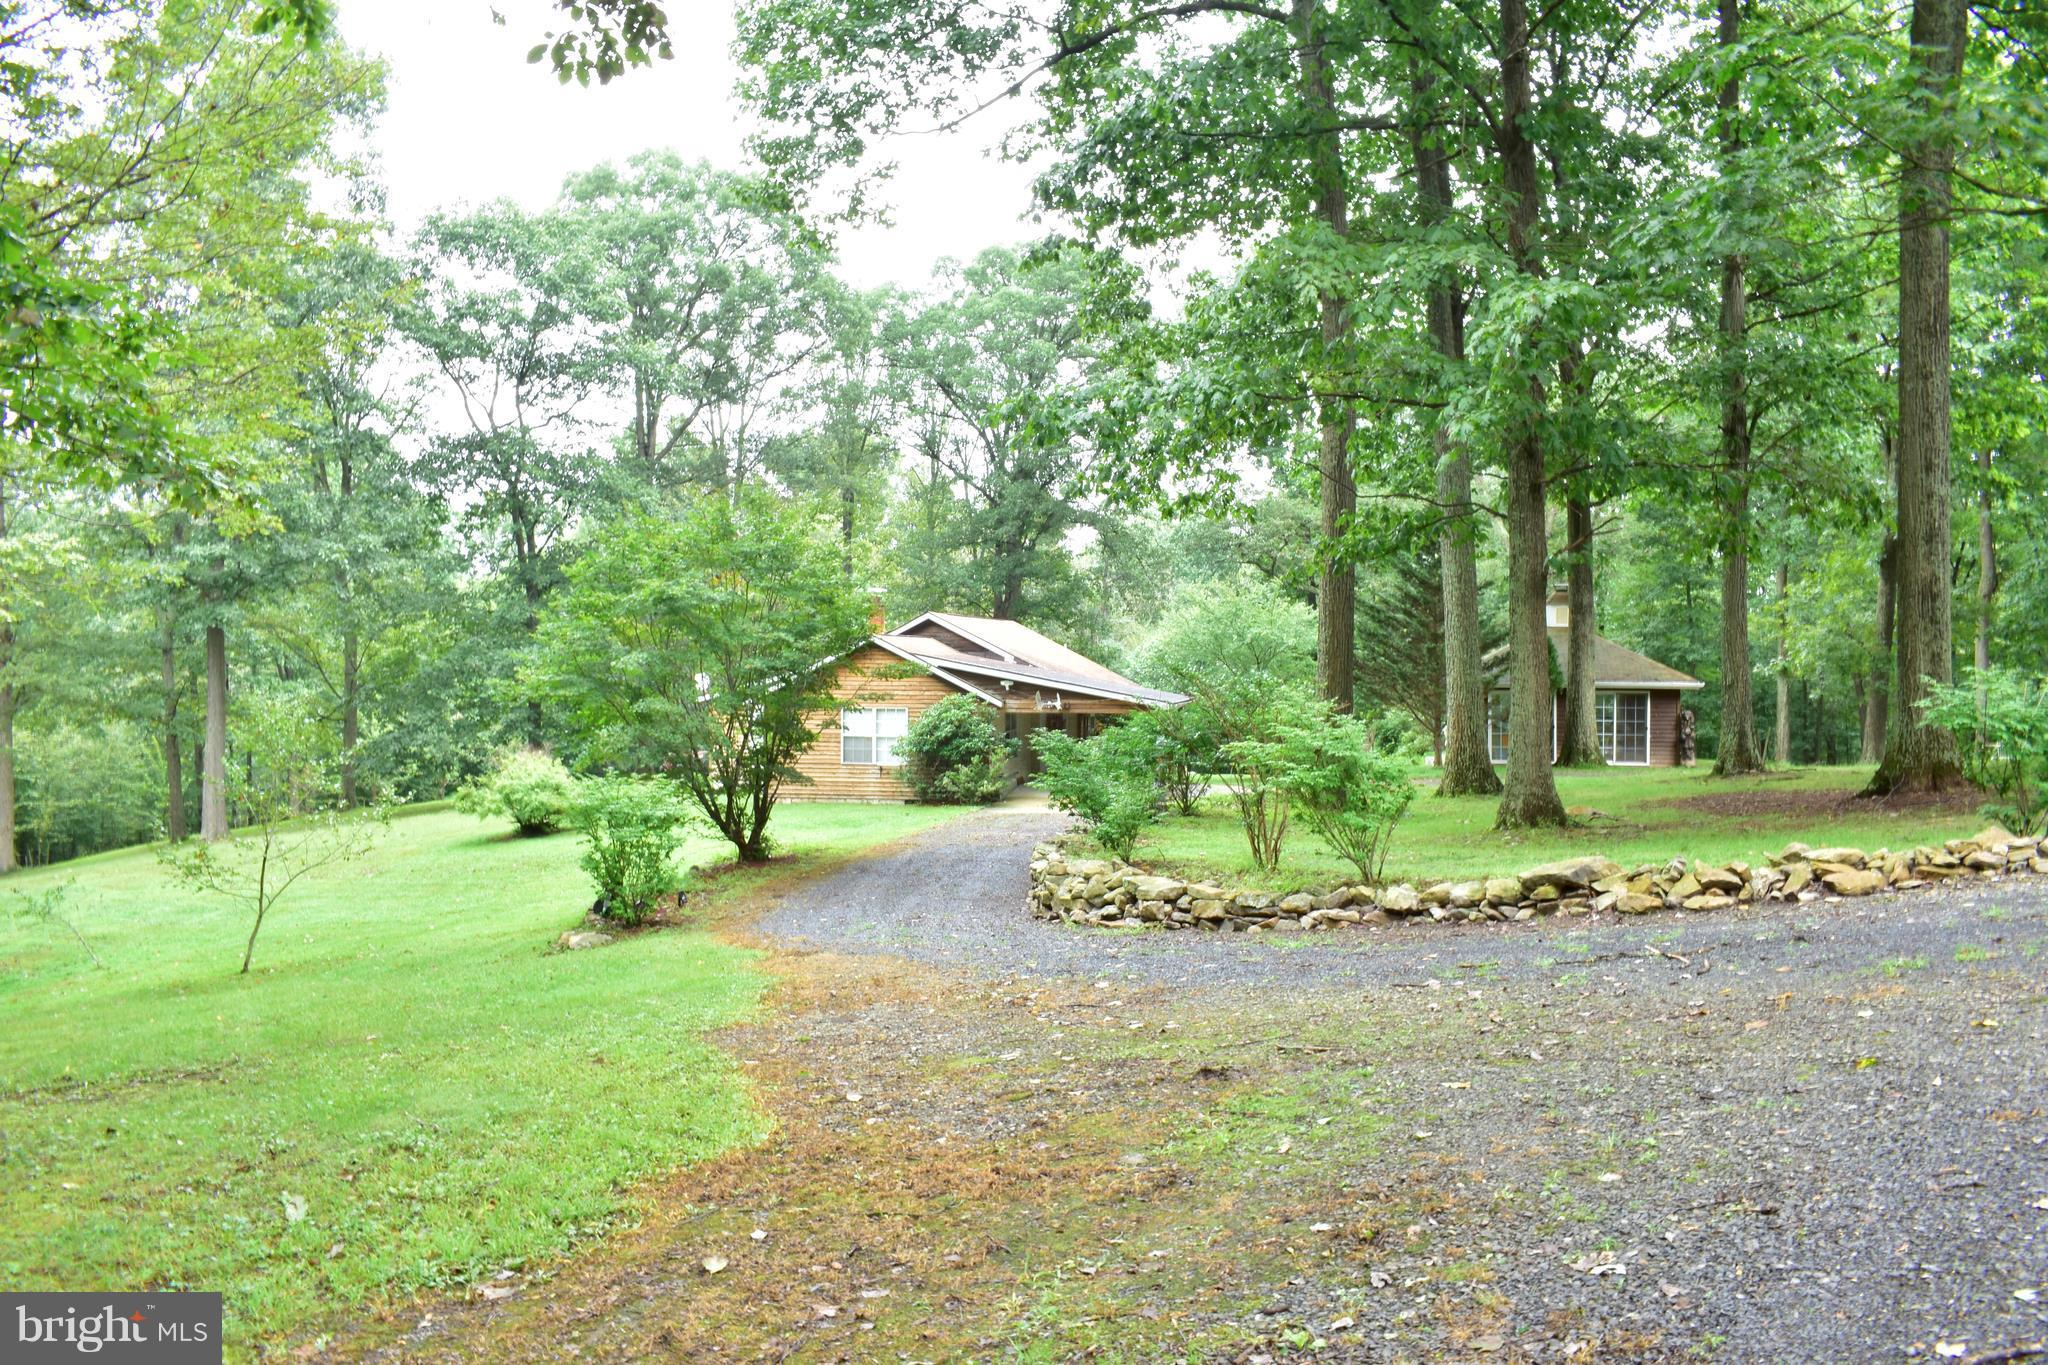 1707 BLACK BEAR ROAD, NEEDMORE, PA 17238